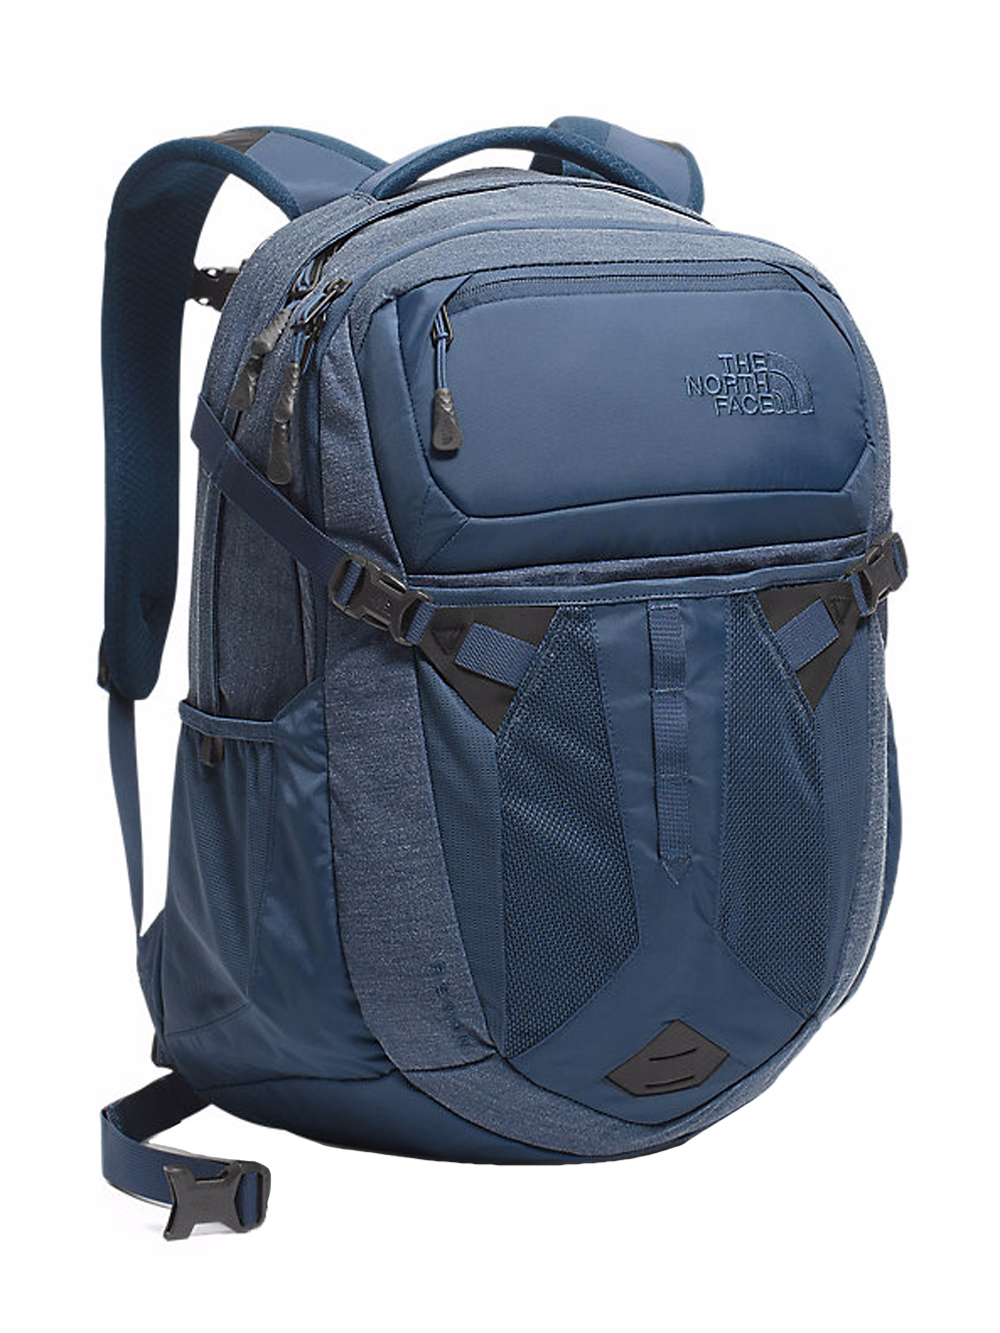 The North Face Recon Backpack - shady blue heather/shady blue, one size